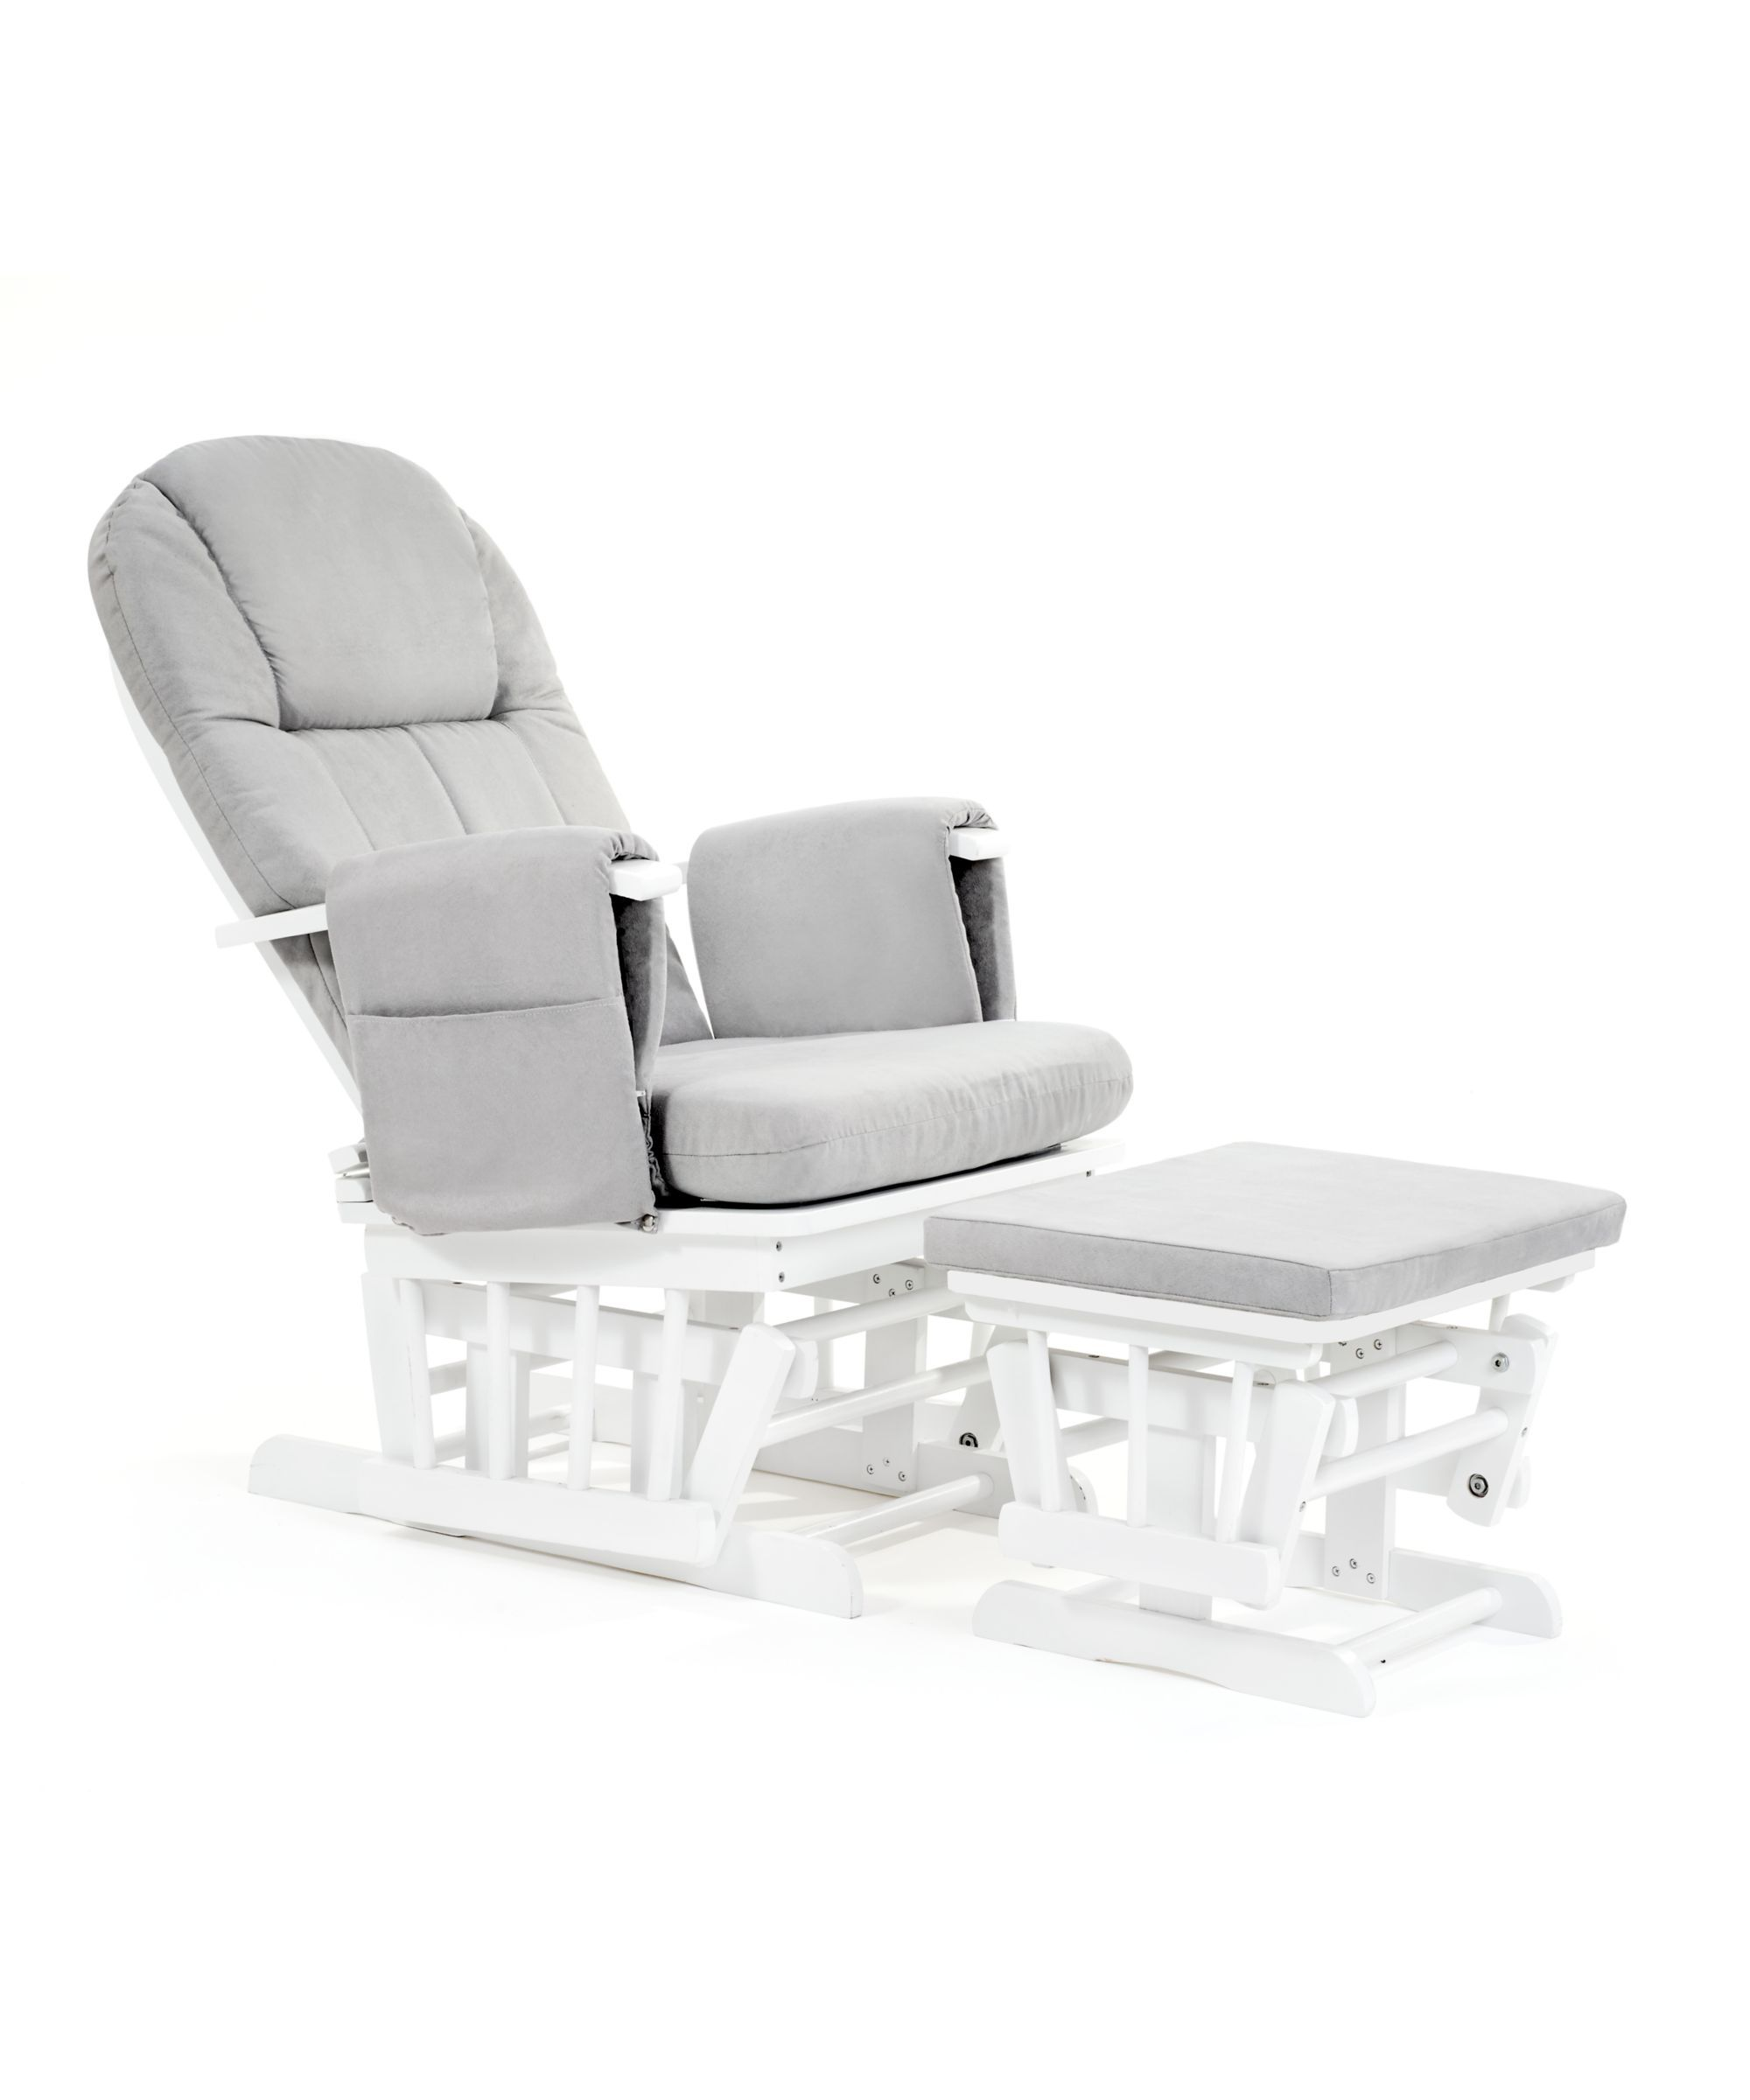 rocking chair recliner for nursery tables and chairs hotels glider babies baby mothercare reclining white with grey cushion